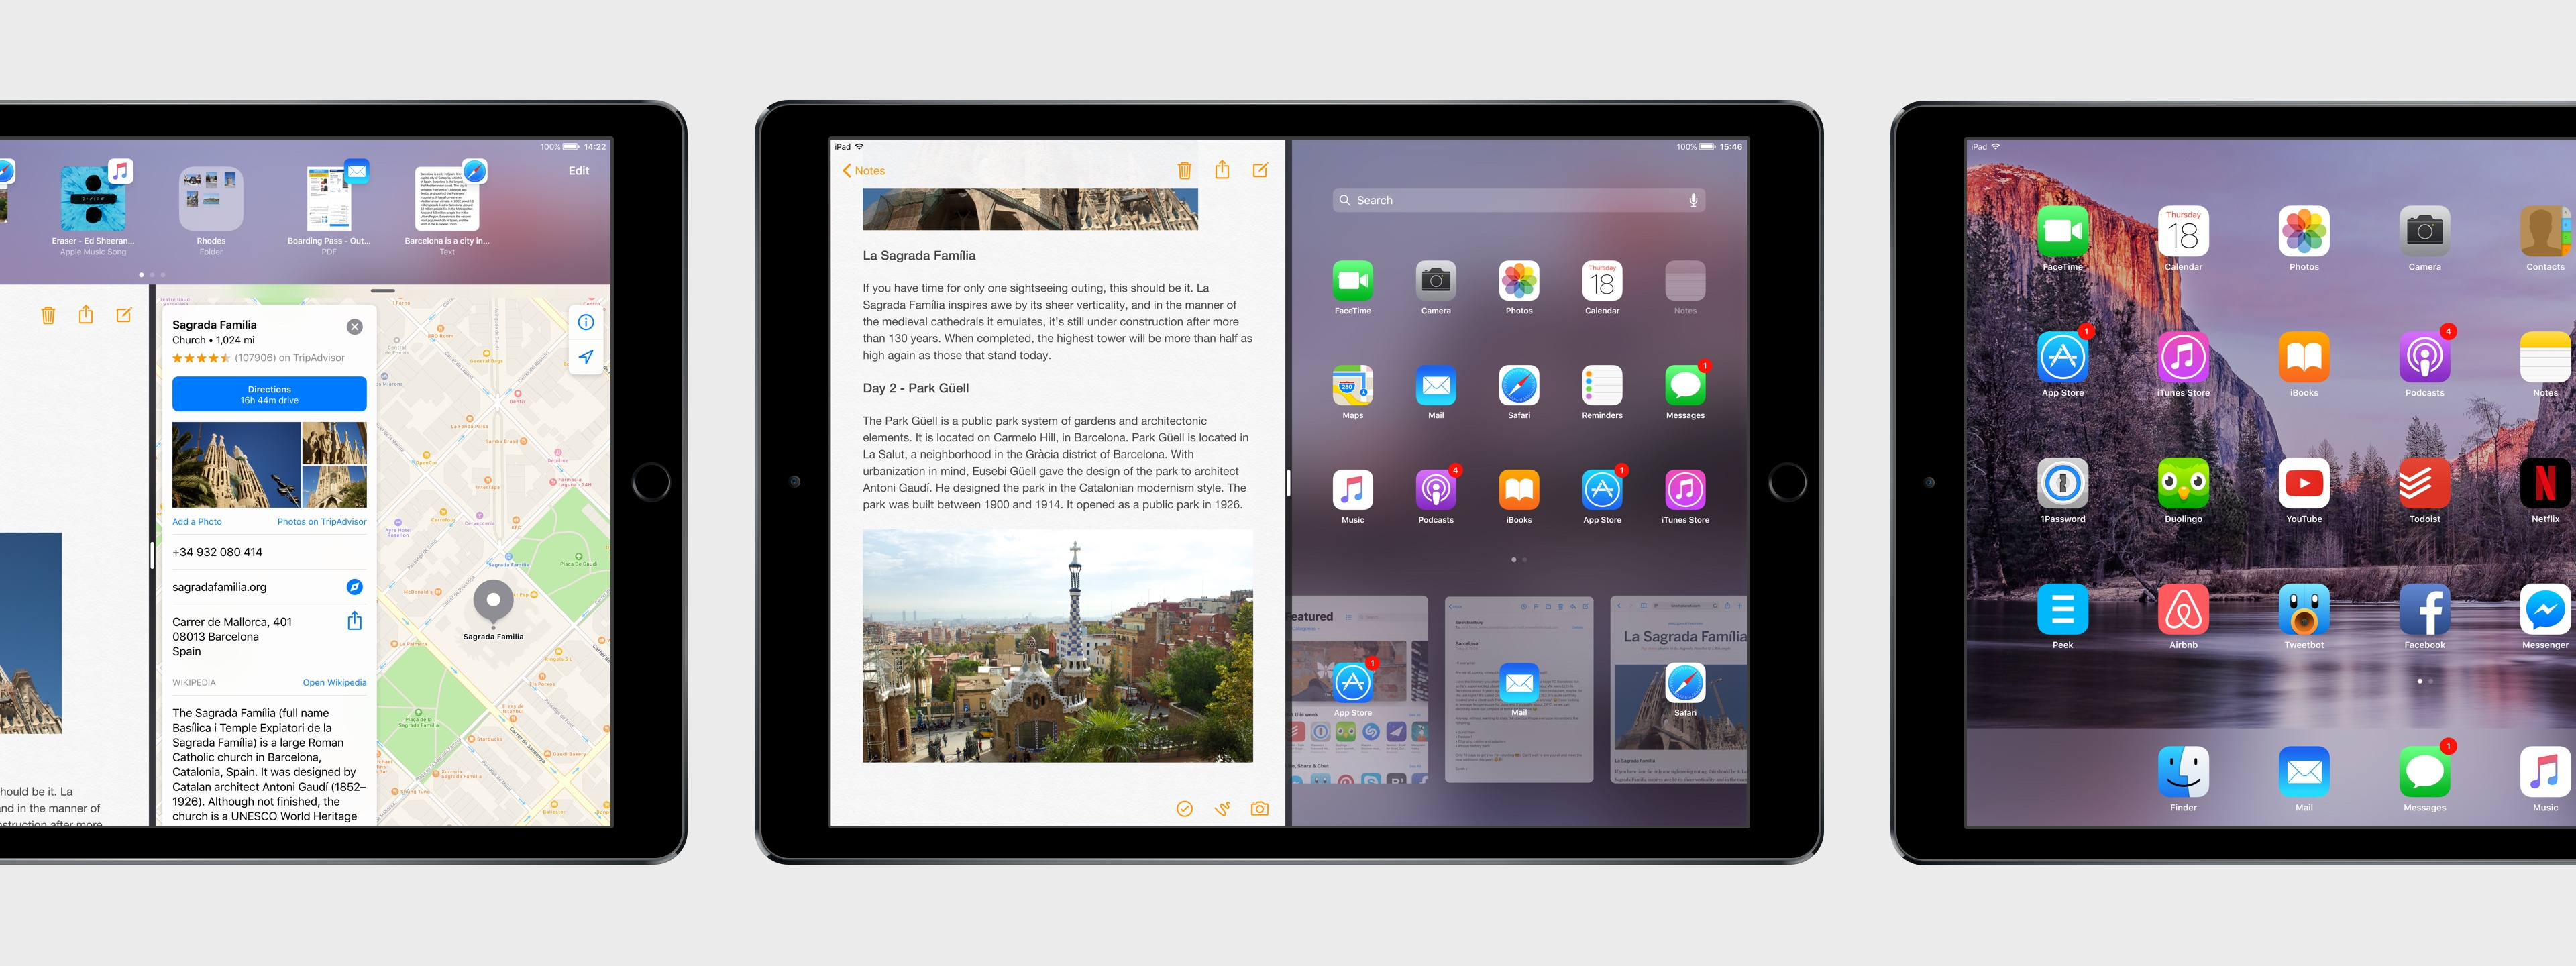 iOS 11 for iPad concept.